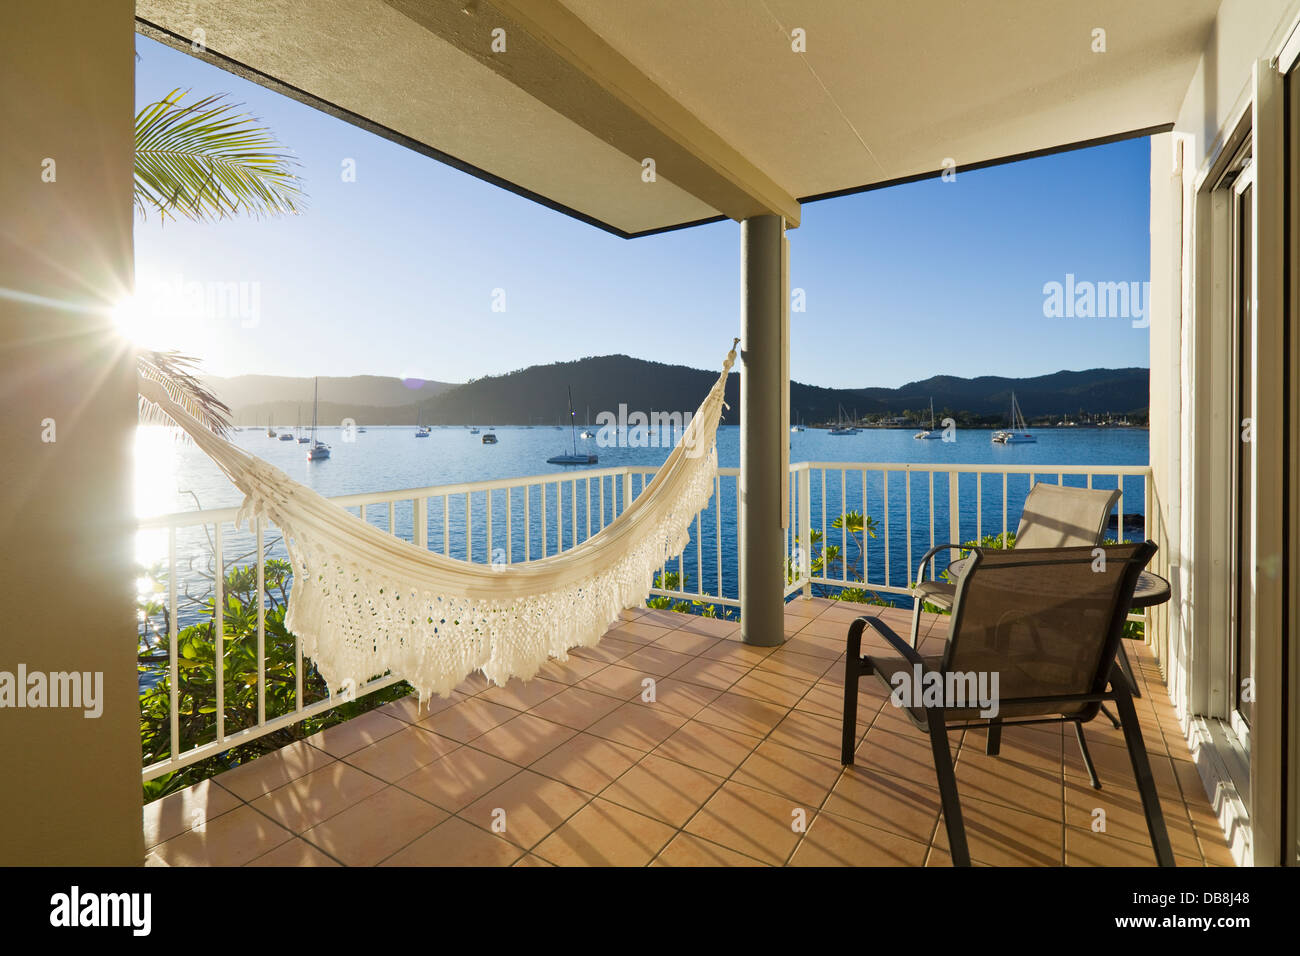 Vues sur la mer depuis le Coral Sea Resort. Airlie Beach, Whitsundays, Queensland, Australie Photo Stock